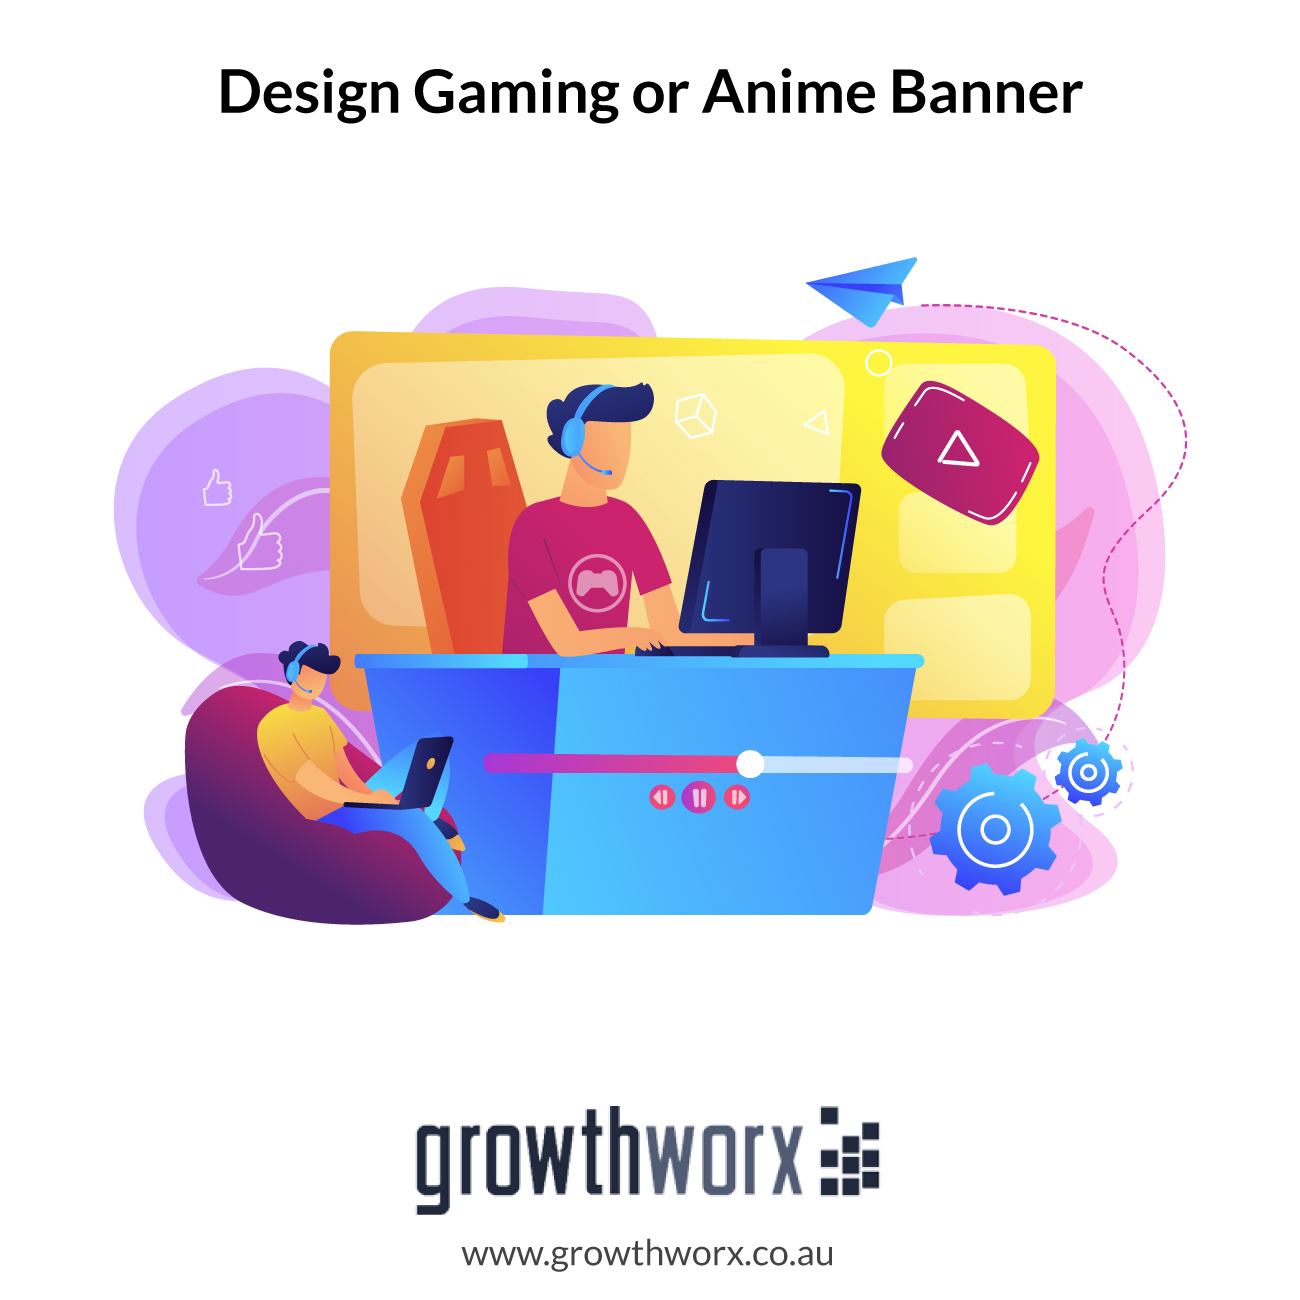 We will design gaming or anime banner for youtube, twitter, twitch 1